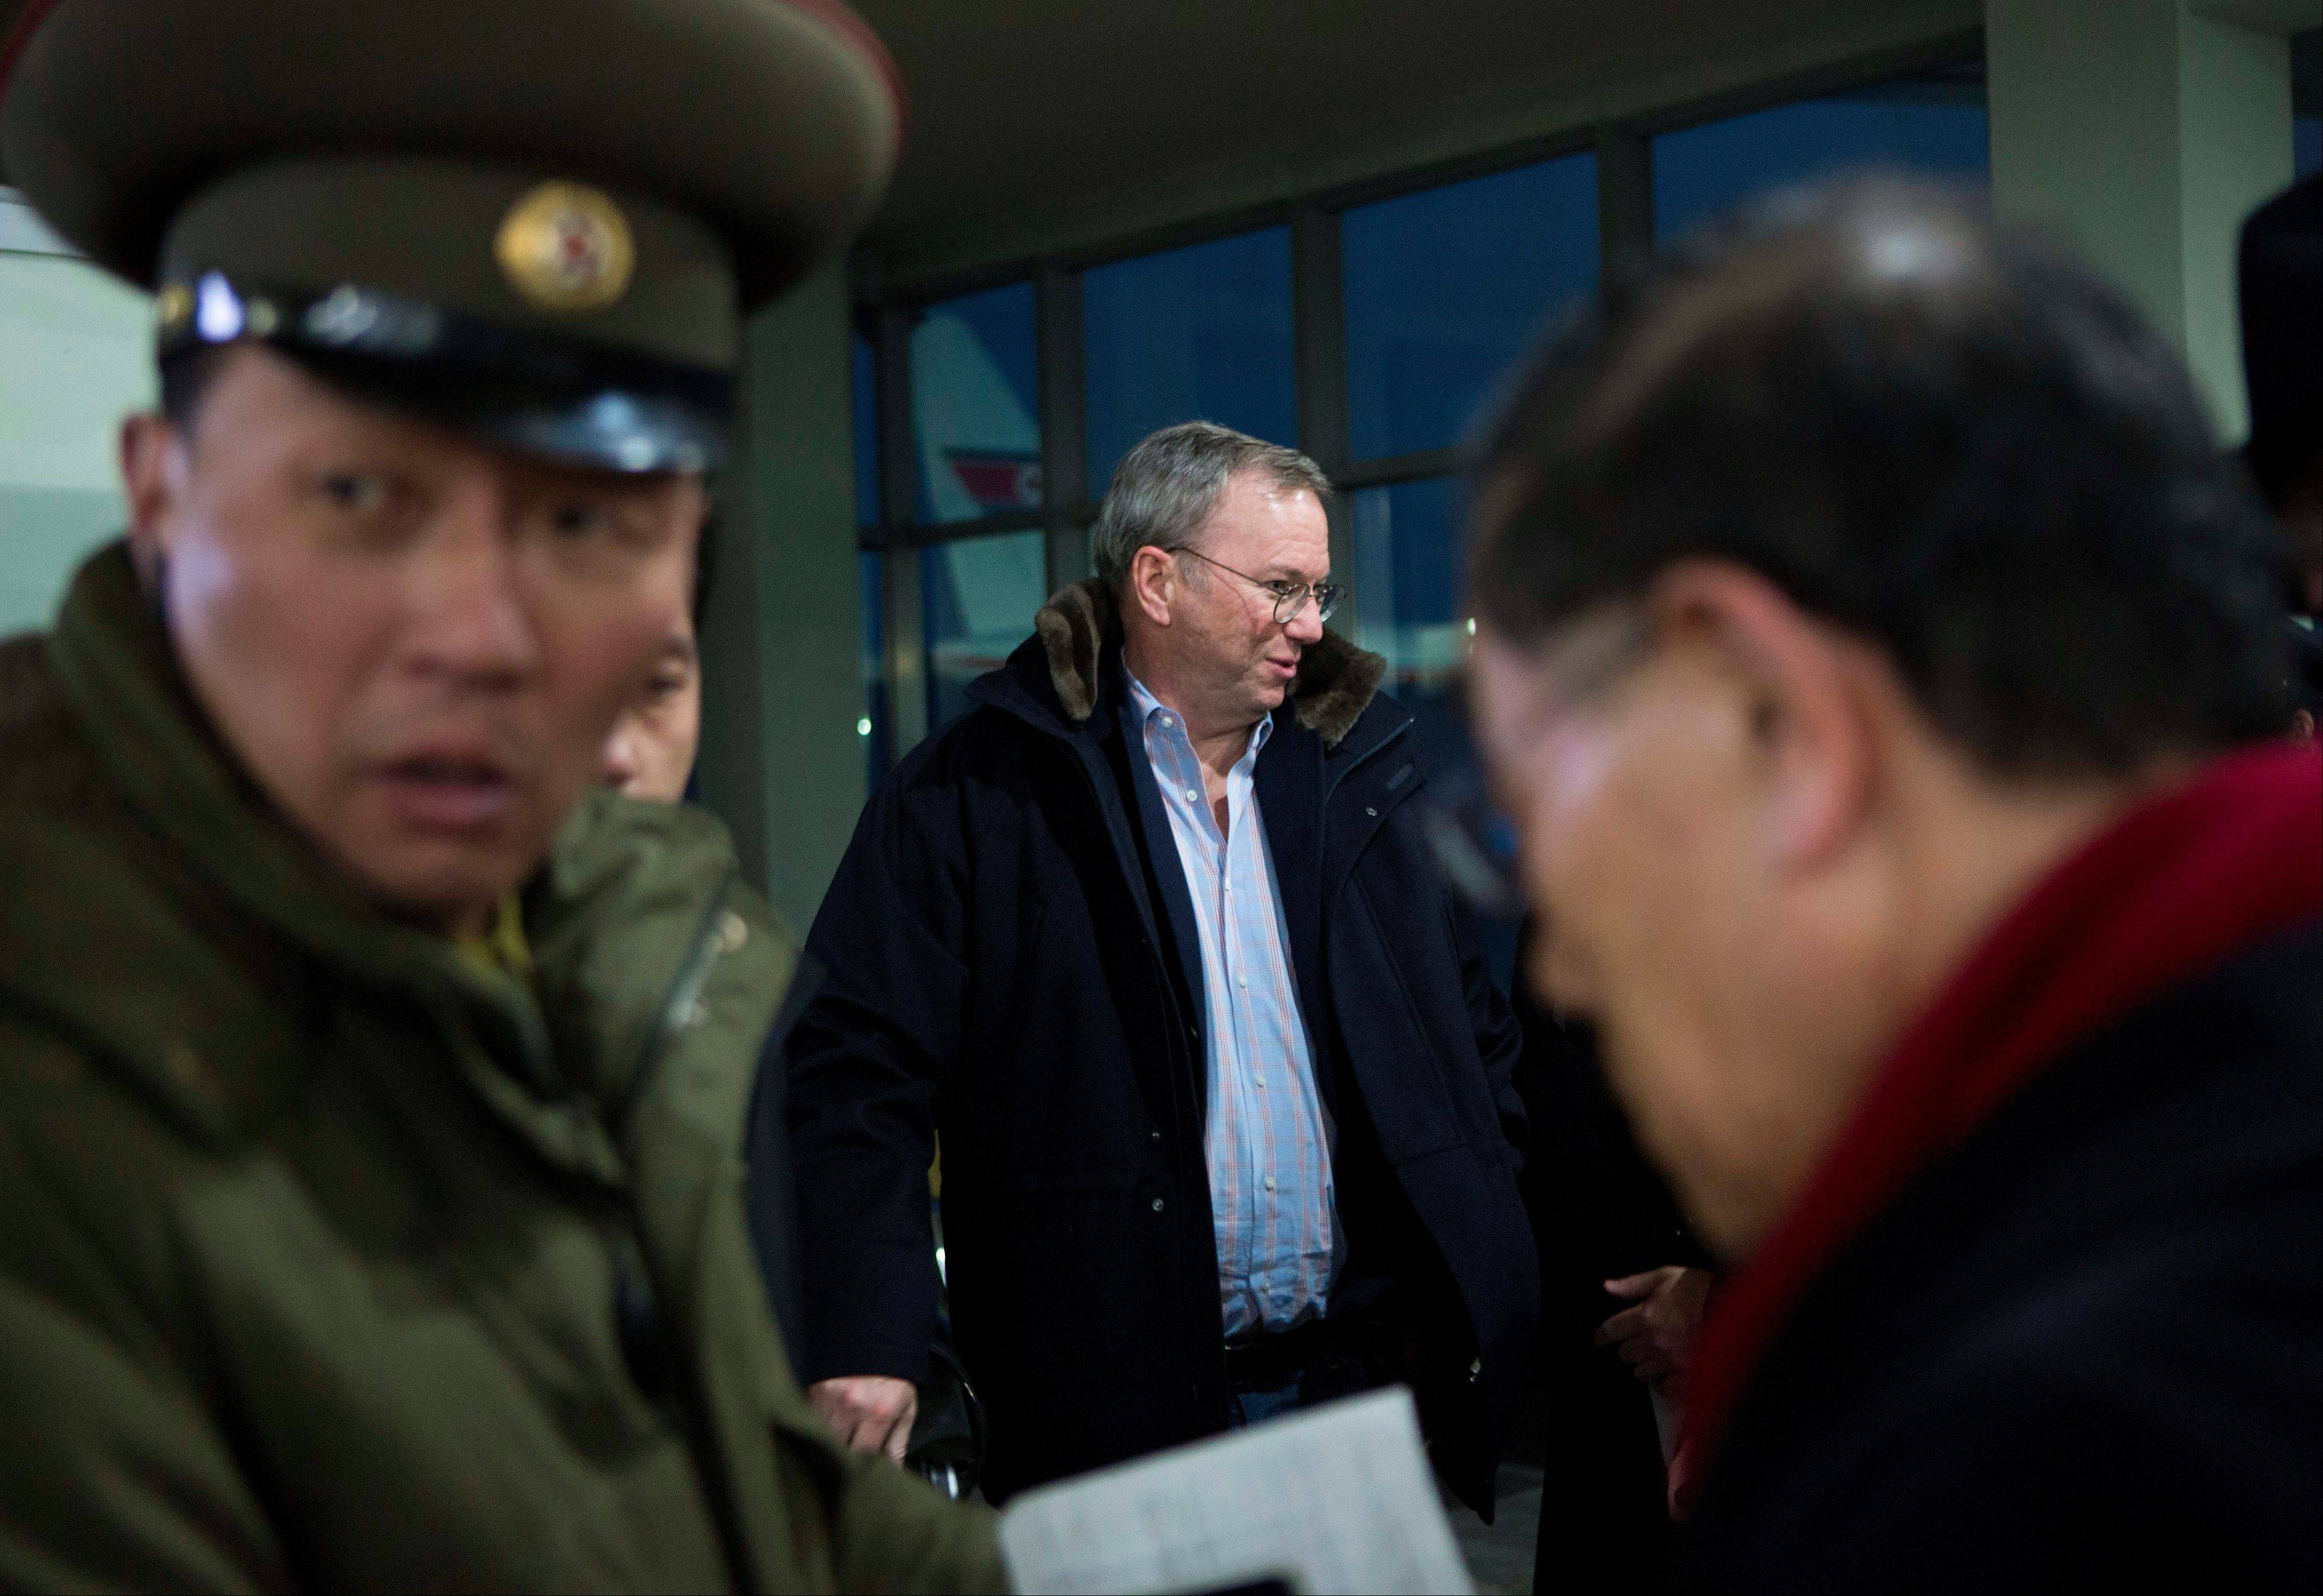 Executive Chairman of Google Eric Schmidt, center, arrives Monday at Pyongyang International Airport in Pyongyang, North Korea. Schmidt arrived in the North Korean capital along with former New Mexico Gov. Bill Richardson. Richardson called the trip to North Korea a private humanitarian visit.